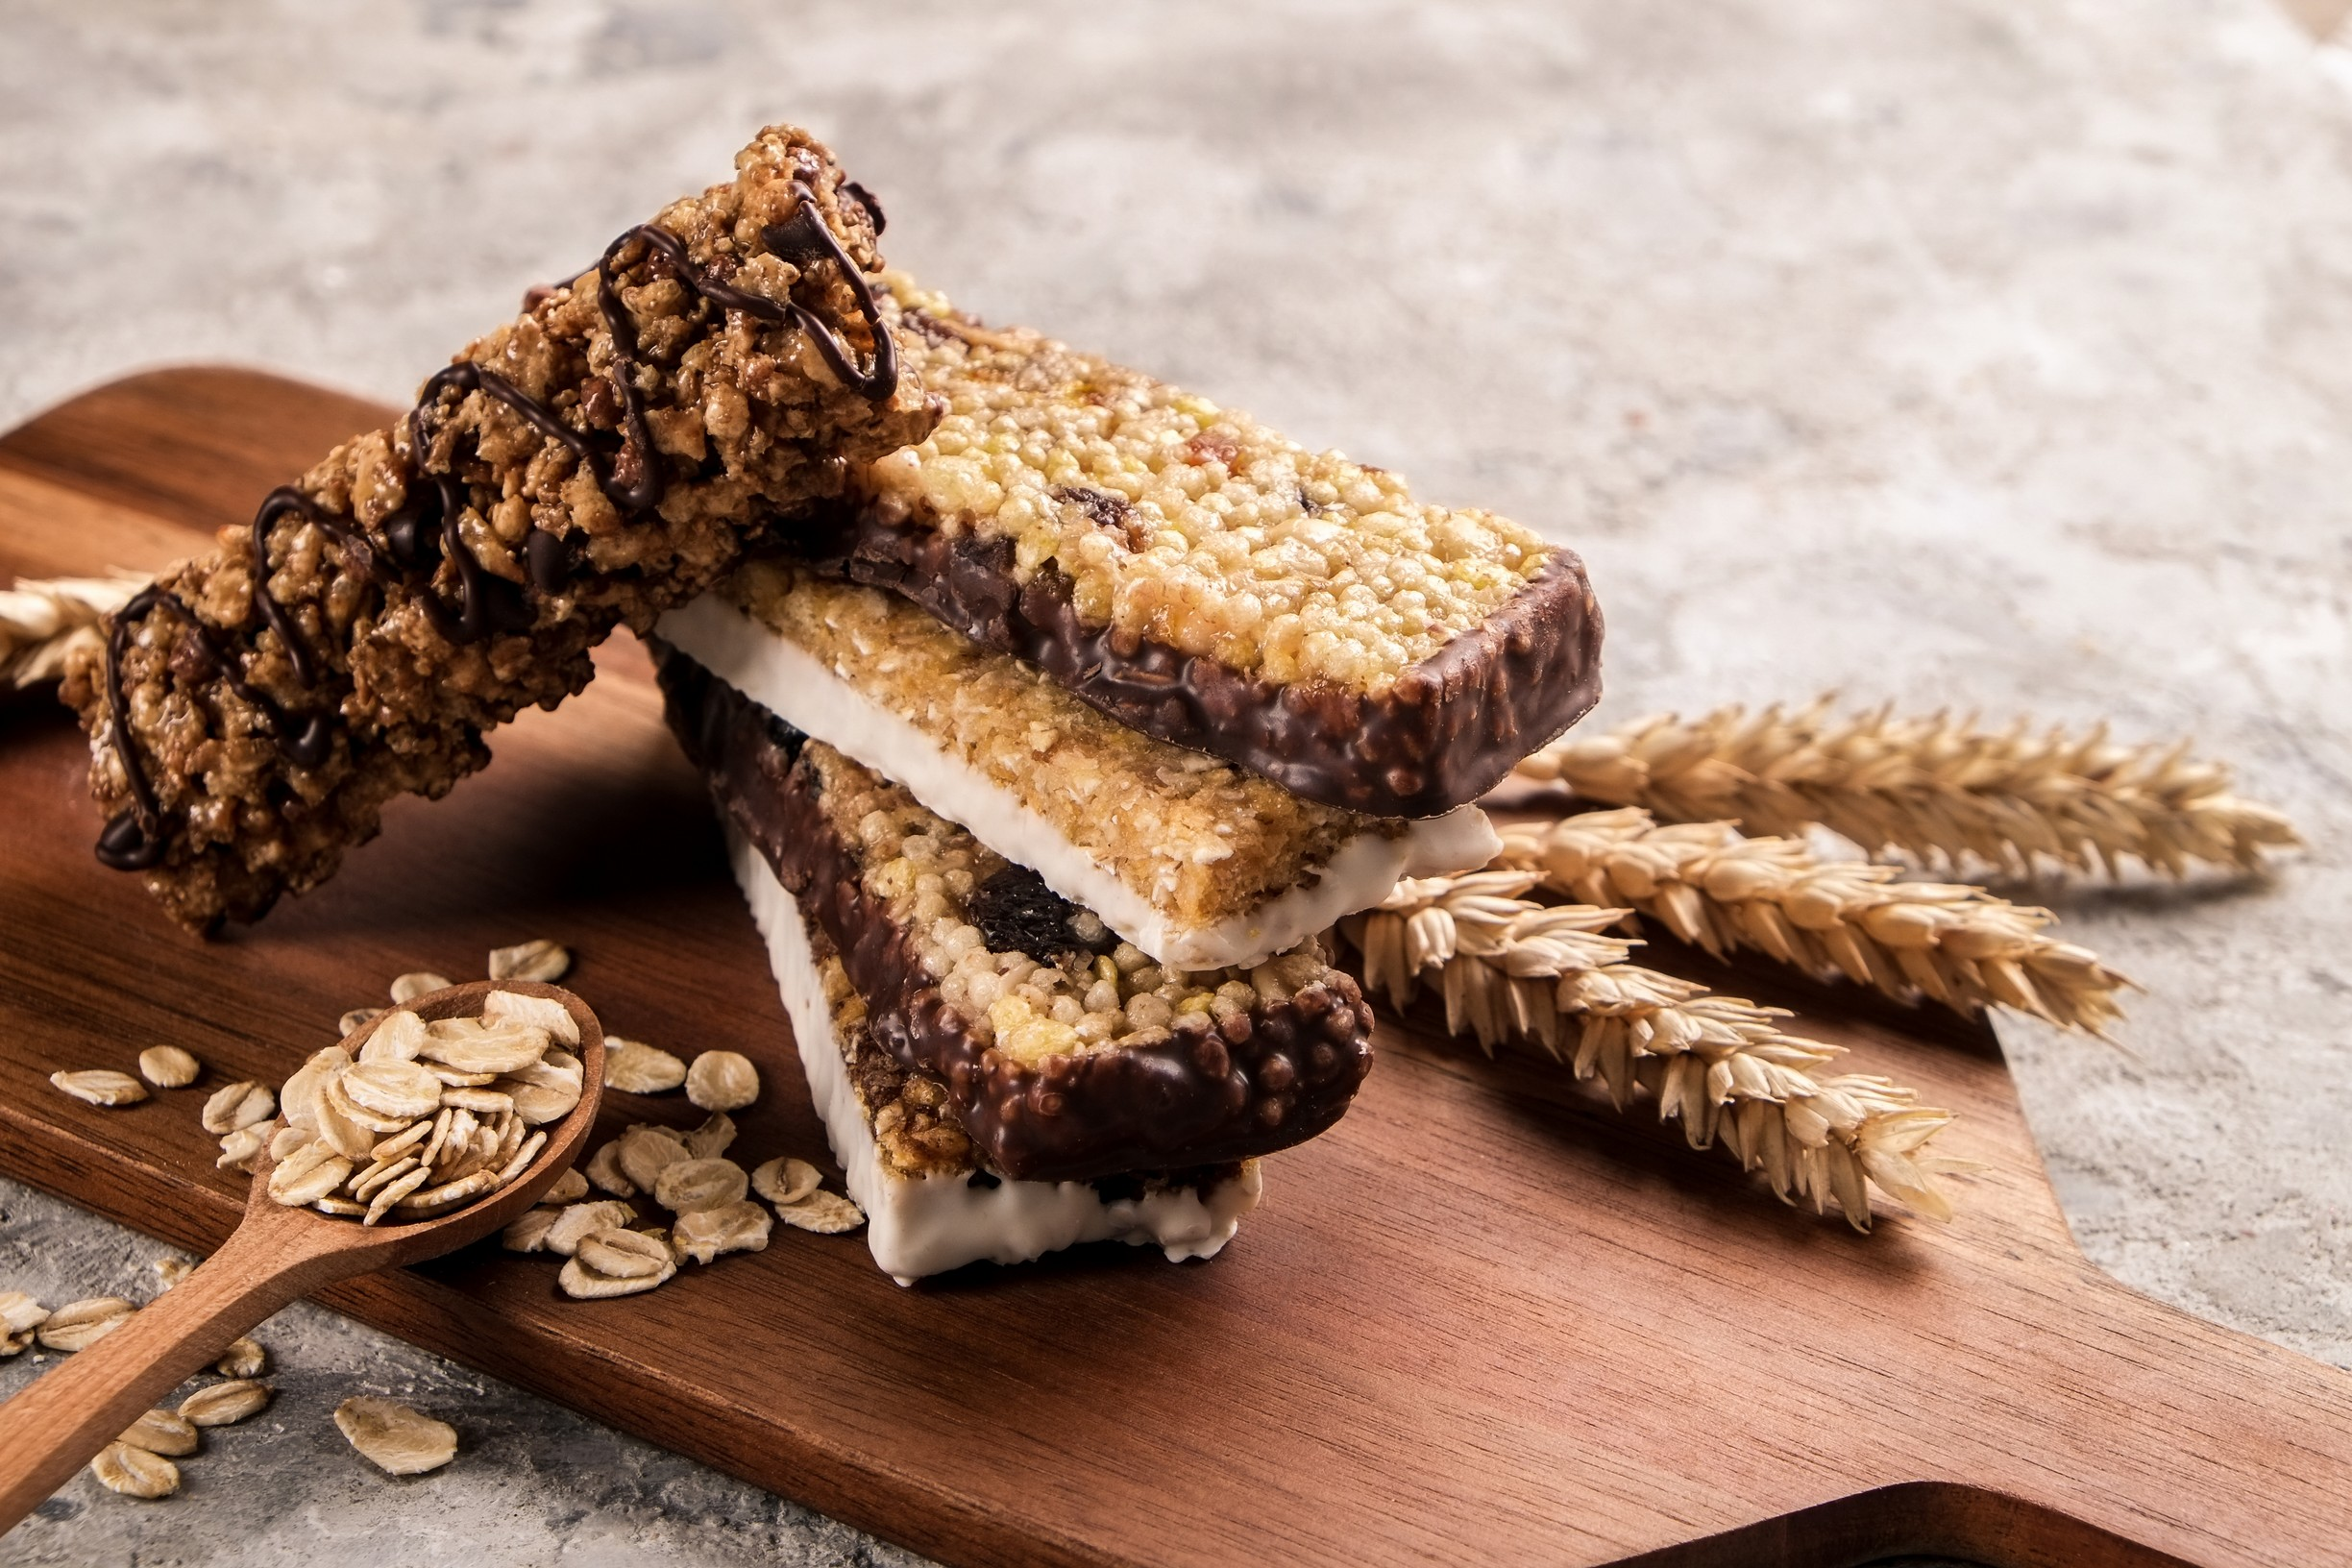 Healthy snack options in San Diego